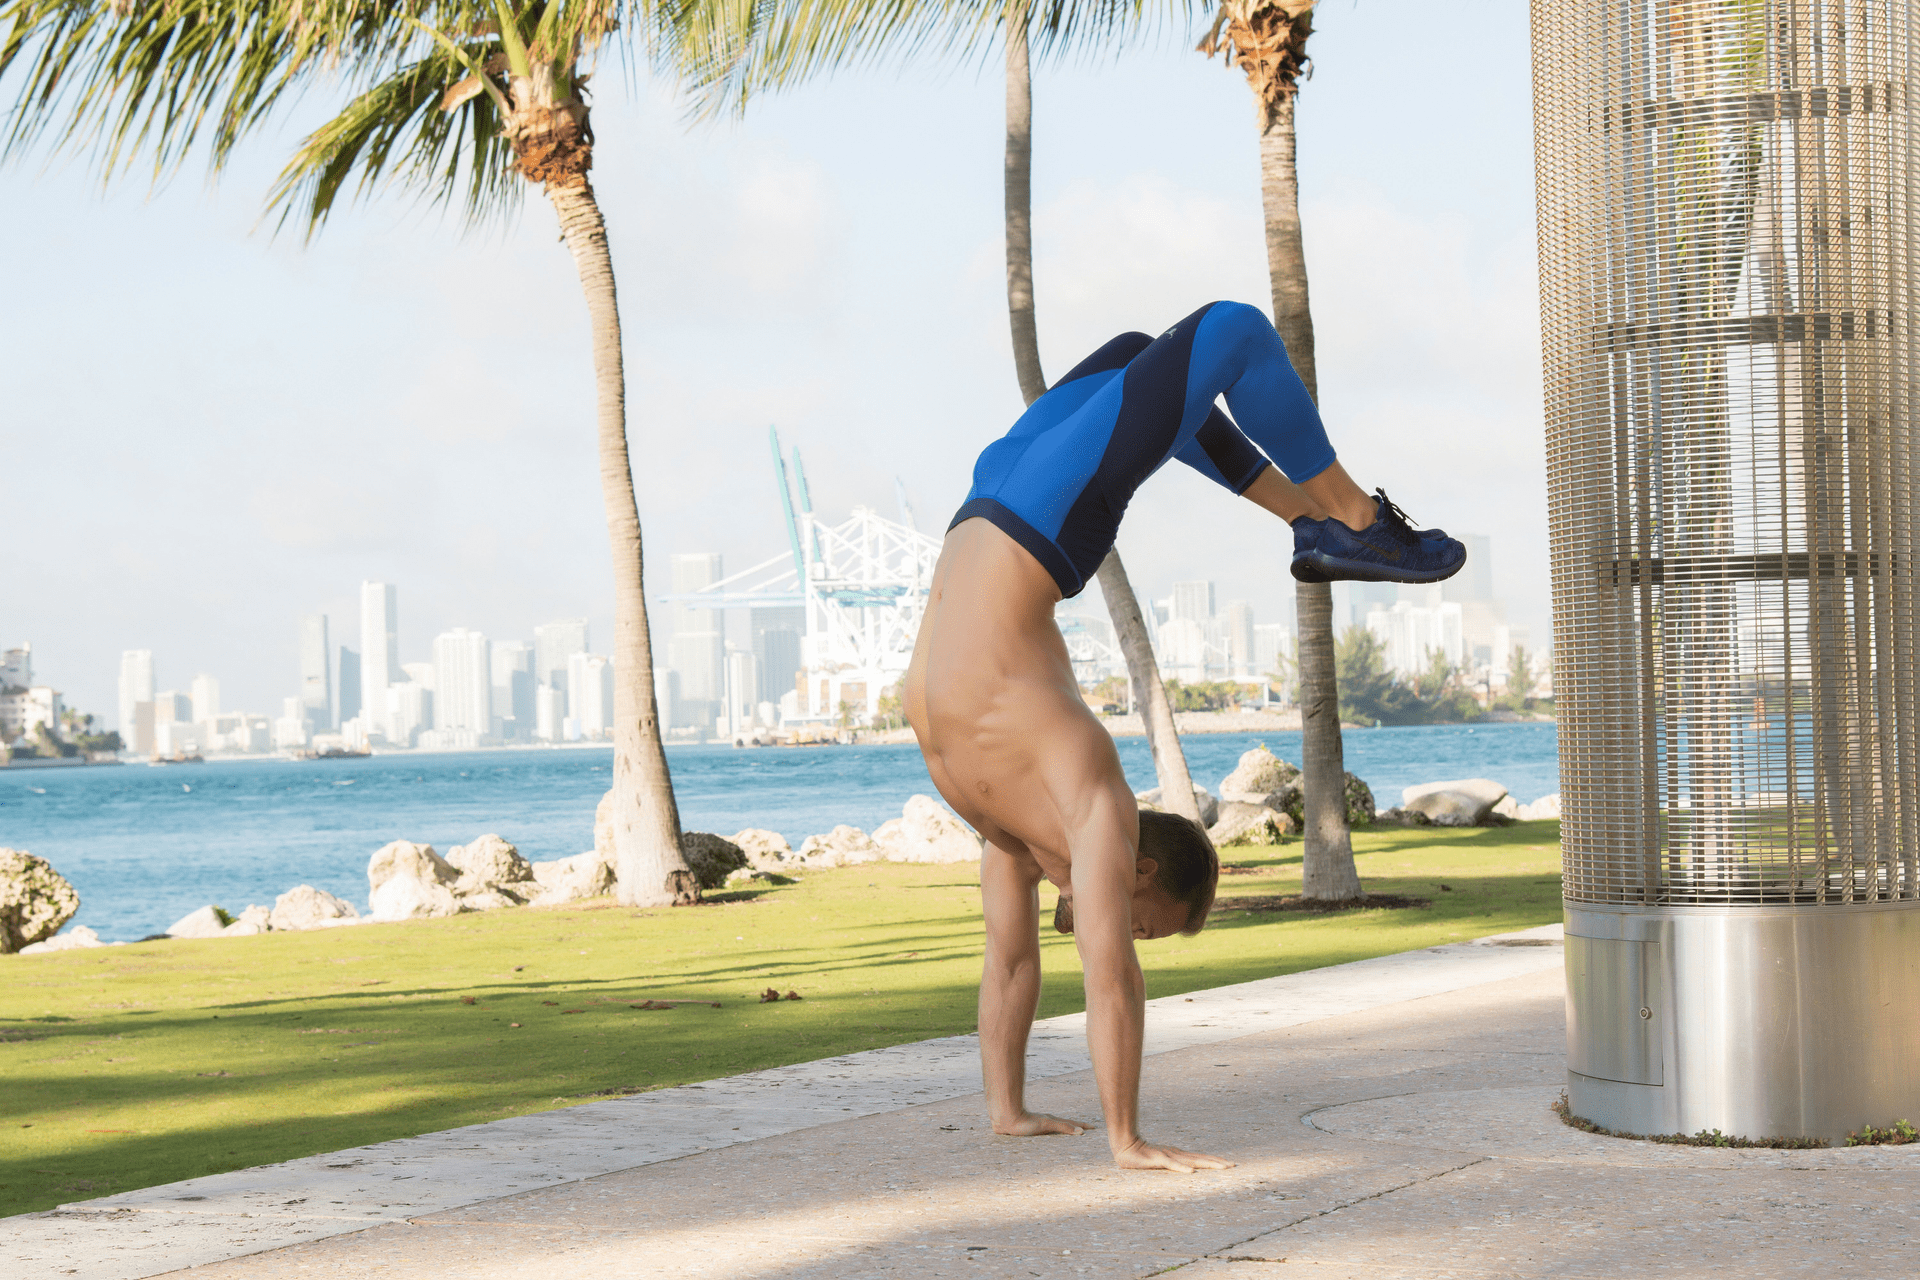 Valentine Aseyo Man performing handstand with river and skyline in background